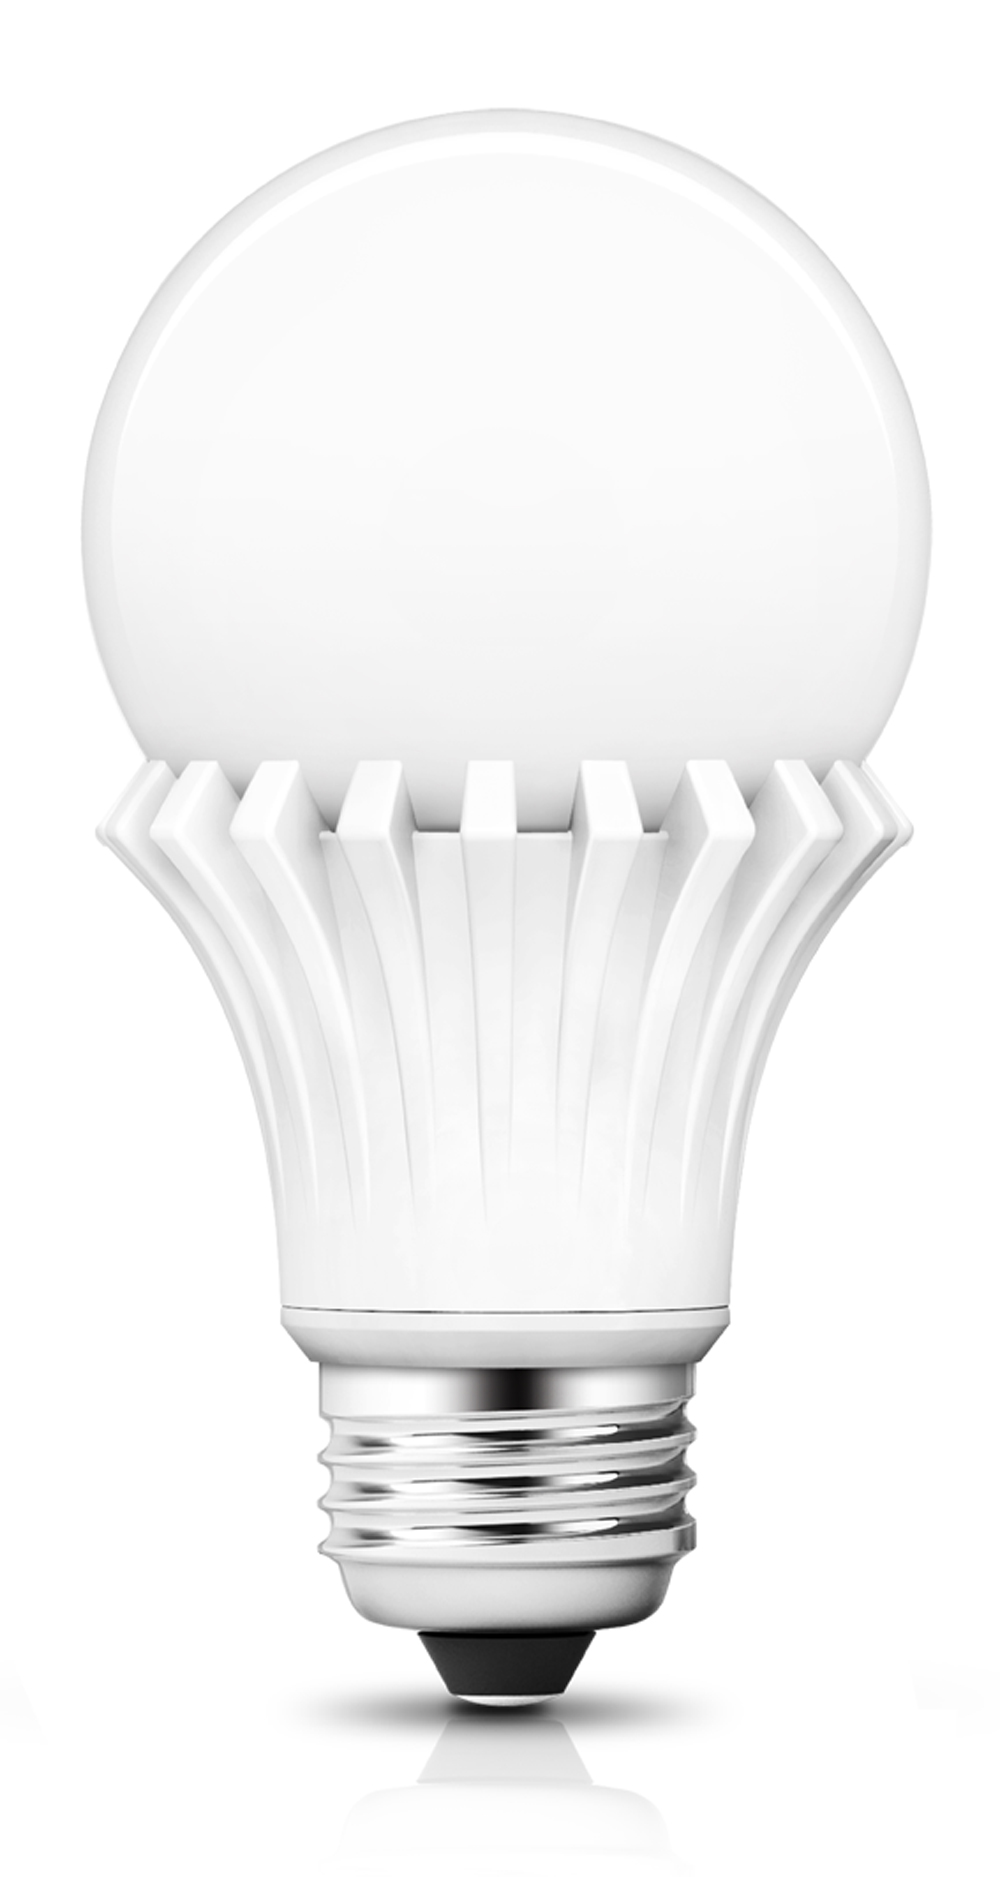 LED F-omni bulb / DELTA ELECTRONICS, INC.